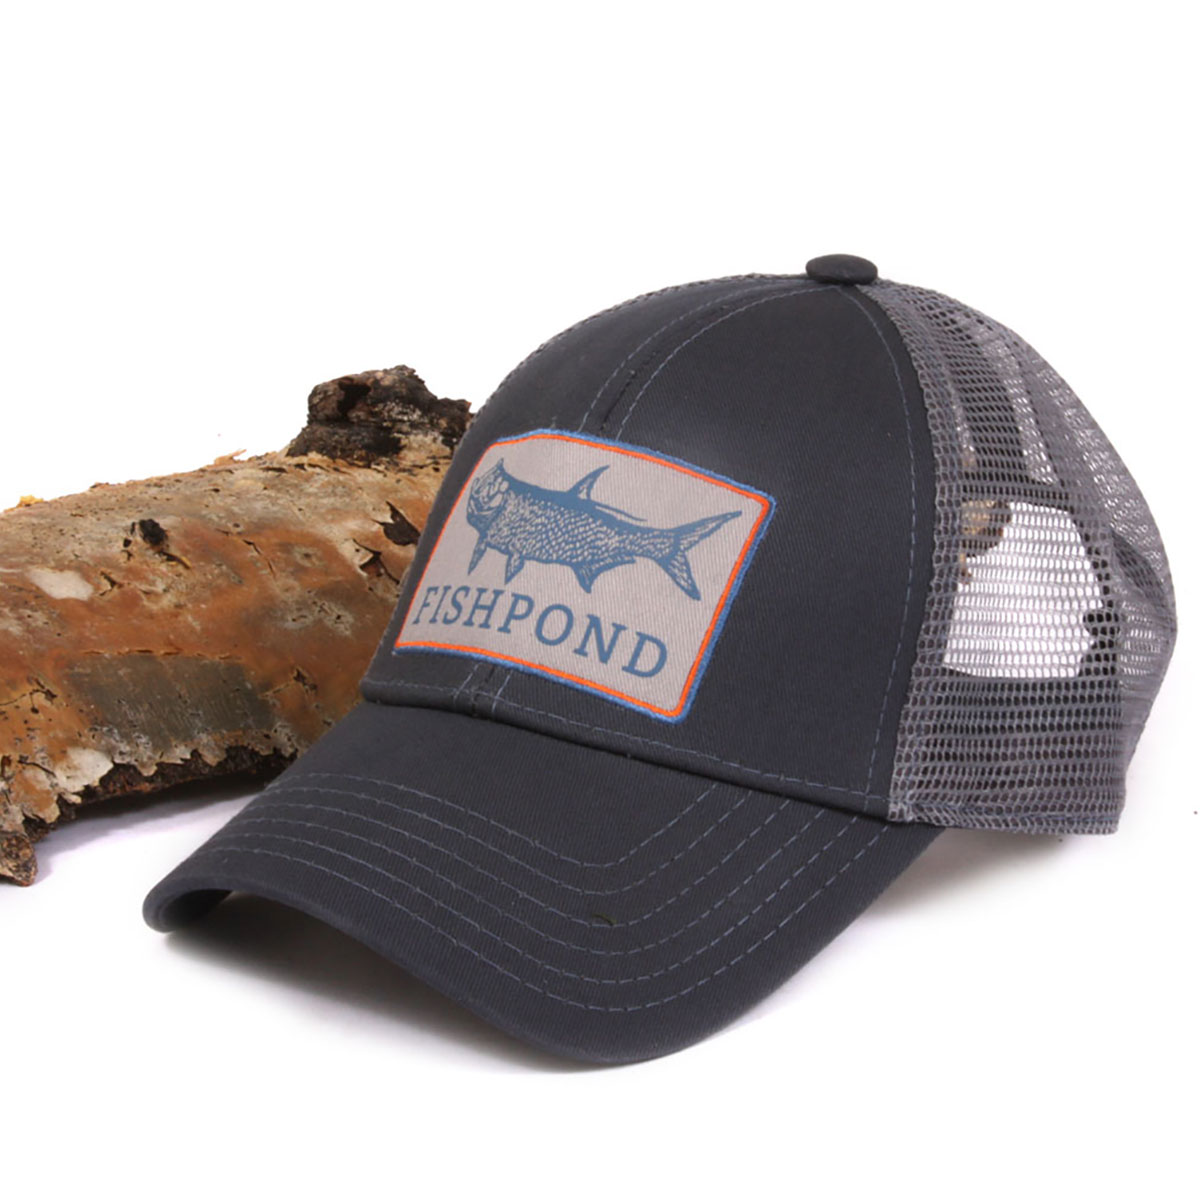 Fishpond retro king logo adjustable velcro fly fishing hat for Fly fishing cap